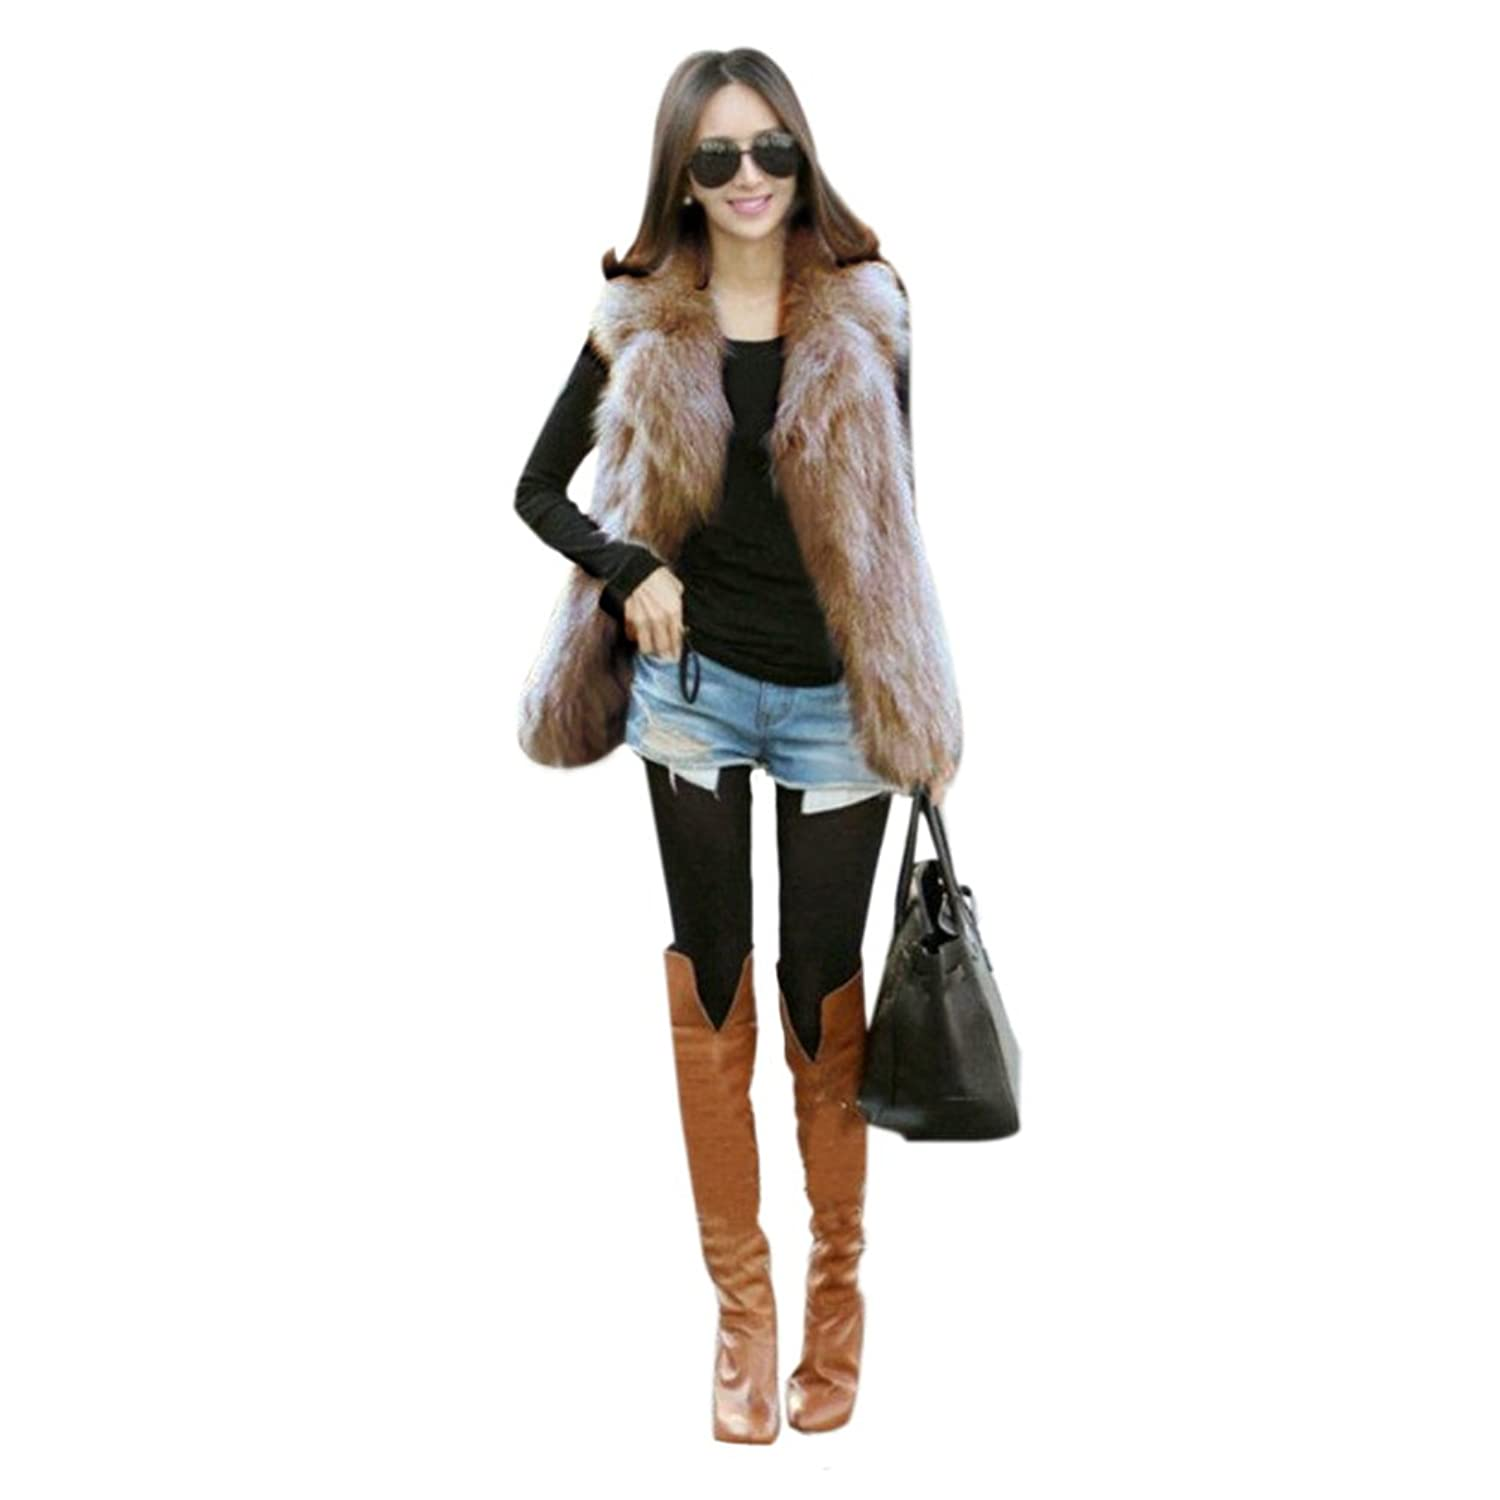 Etosell Women Faux Fox Fur Shaggy Waistcoat Long Hair Lapel Vest Coat Camel L старомодная комедия 2018 05 06t18 00